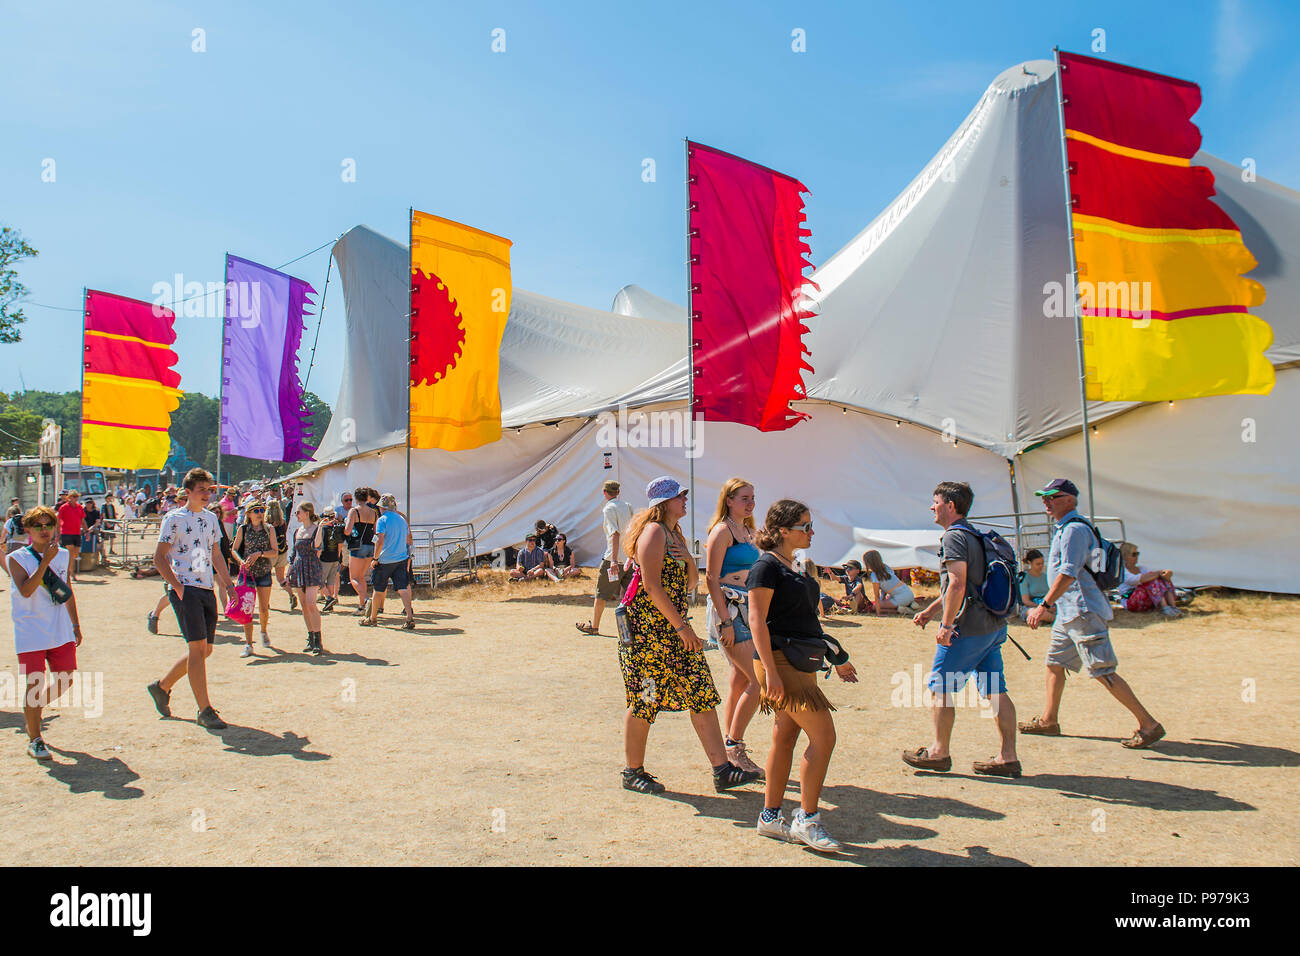 Suffolk, UK. 15th July 2018.Suffolk, UK. 15th July 2018.Suffolk, UK. 15th July 2018. Heading for the Arena in hot sun - The 2018 Latitude Festival, Henham Park. Suffolk 15 July 2018 Credit: Guy Bell/Alamy Live News Credit: Guy Bell/Alamy Live News Credit: Guy Bell/Alamy Live News - Stock Image